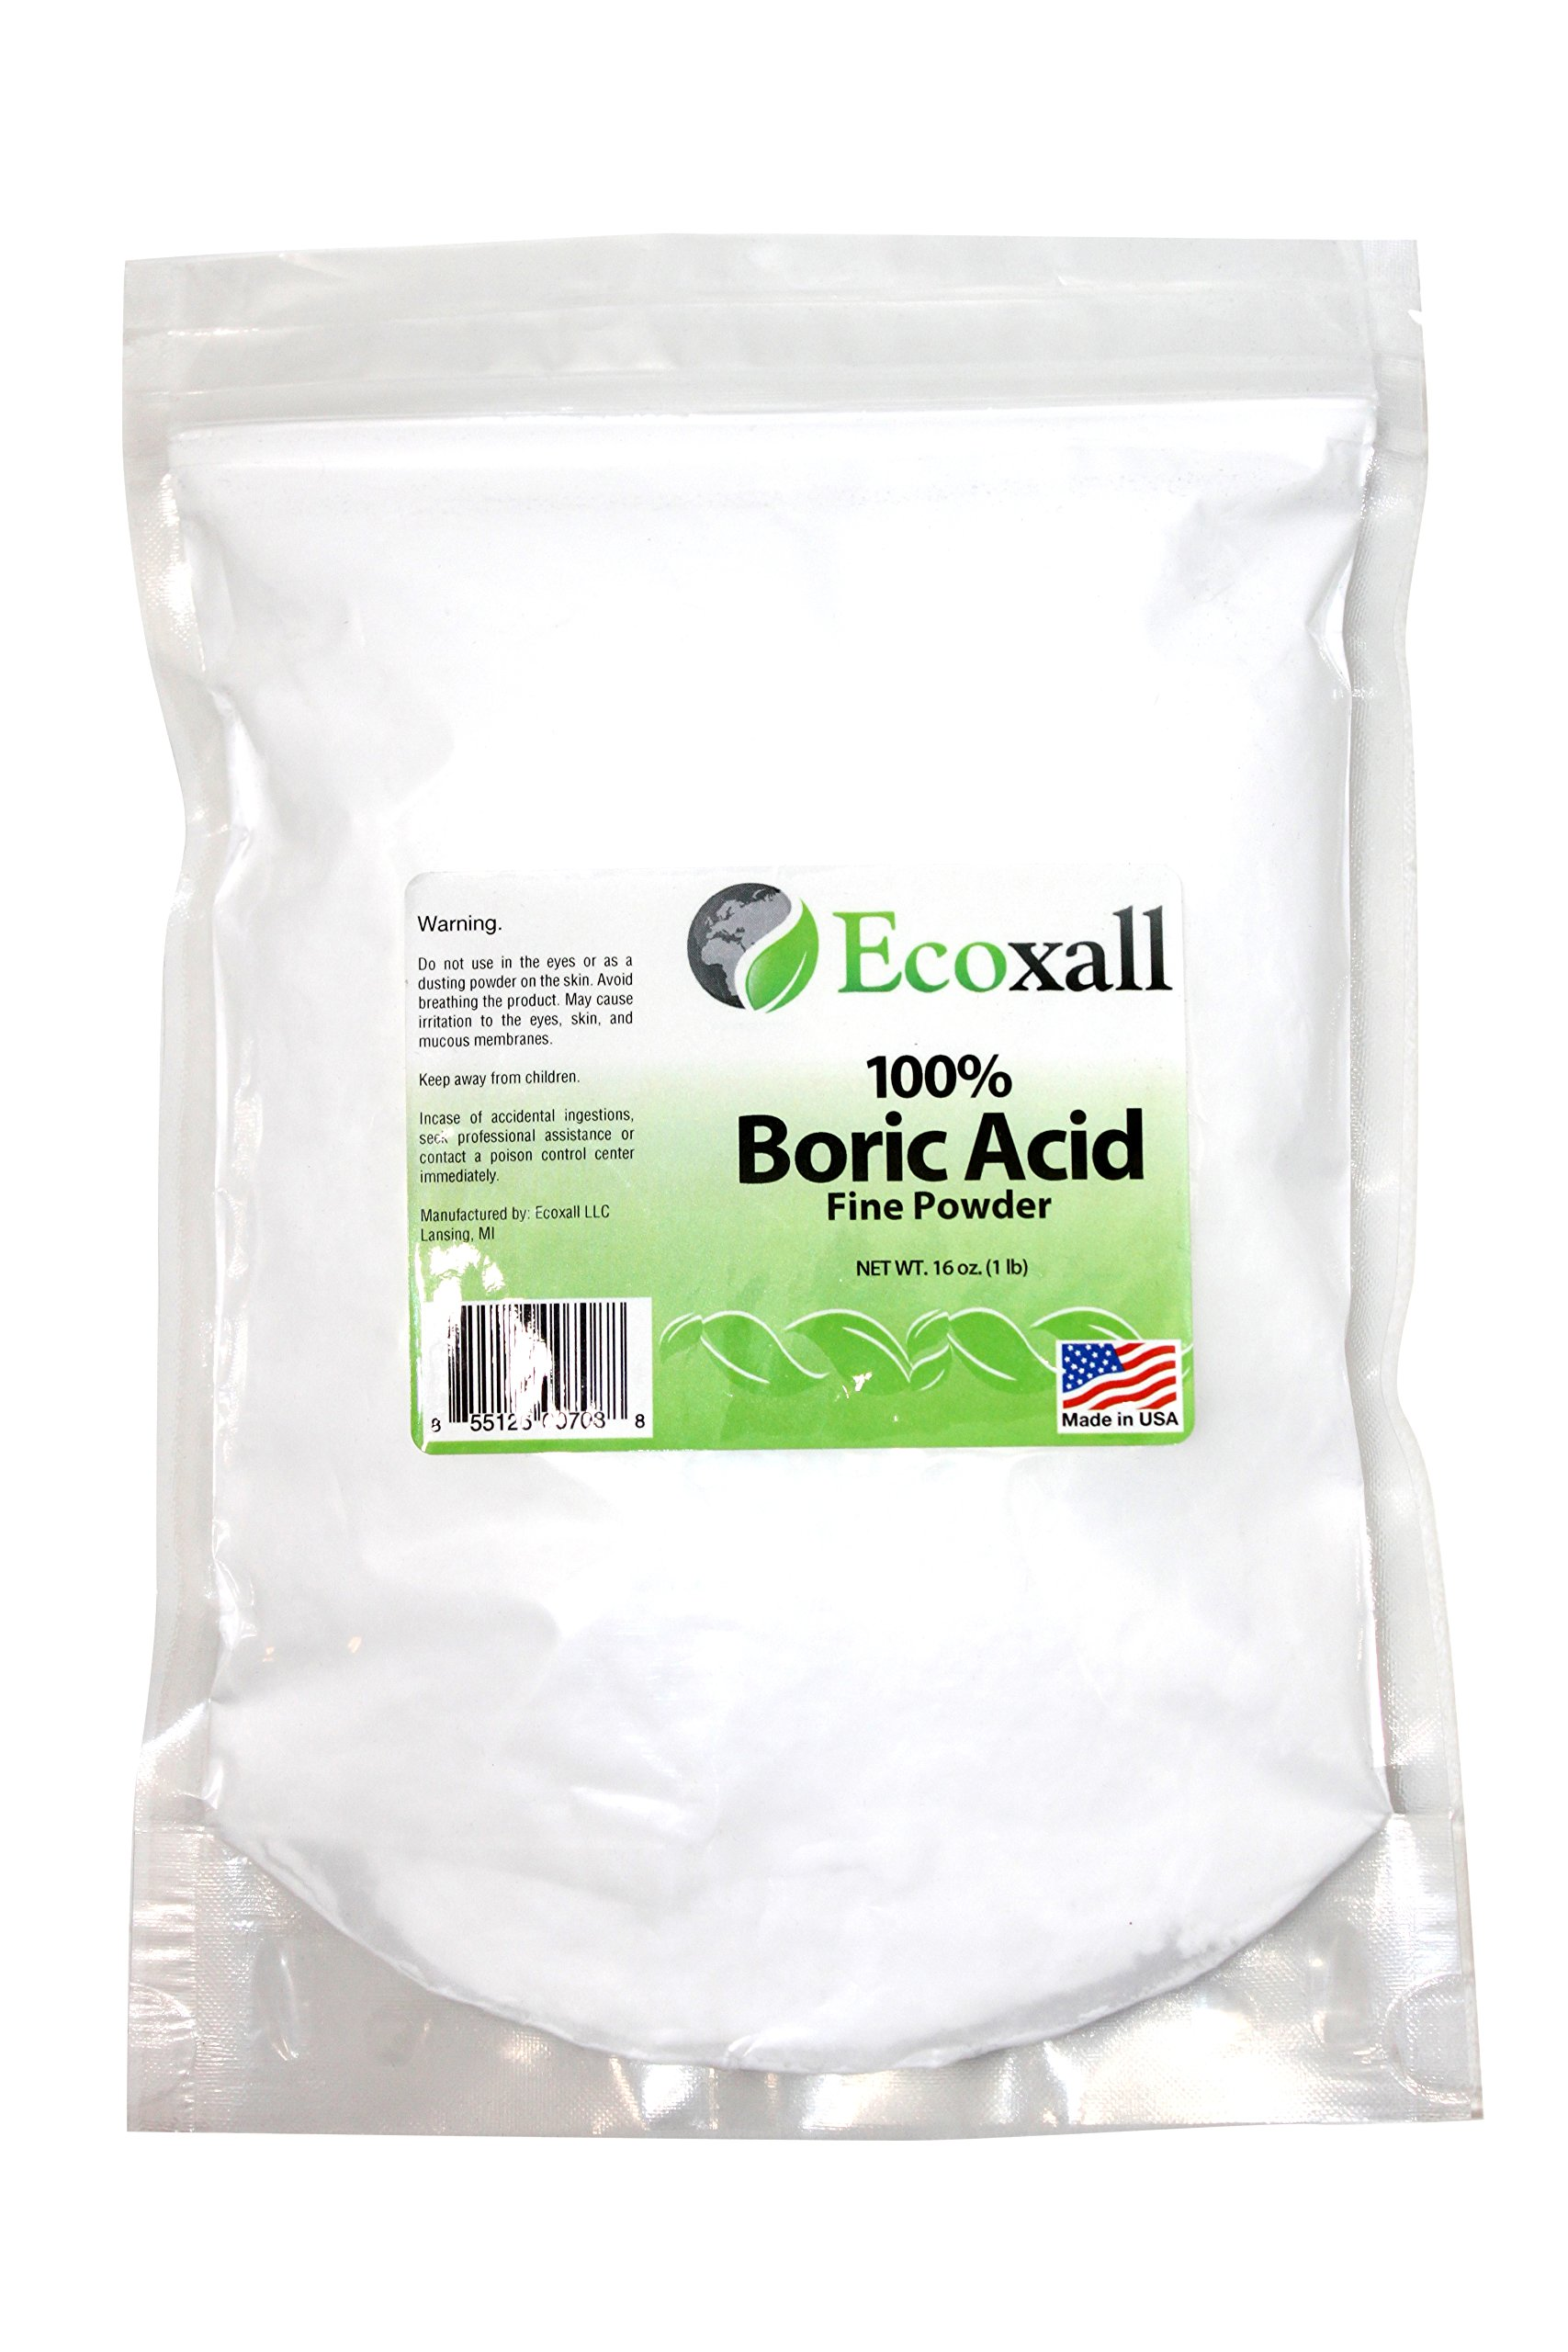 Ecoxall - Fine Powder Boric Acid Powder 99.9% Pure Anhydrous 1 lb. Bag